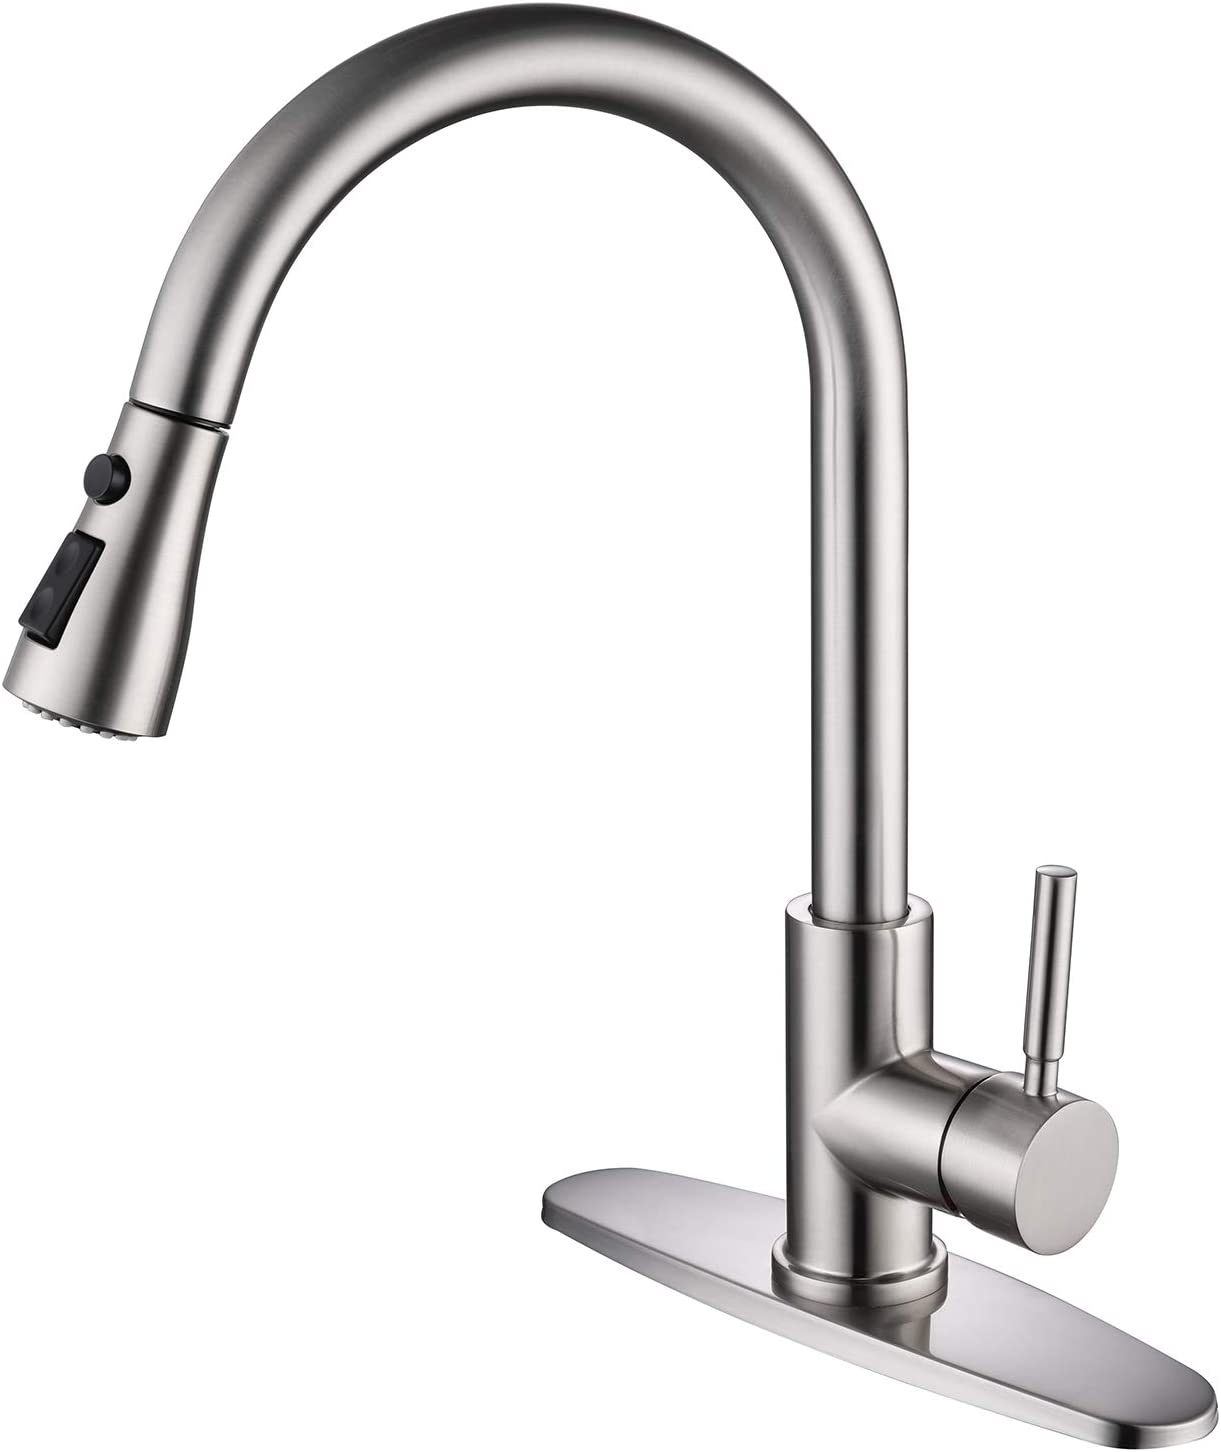 MOWA M13028 Brushed Nickel One-Handle High Arc Pulldown Kitchen Faucet, Single Lever Kitchen Sink Faucets Without Deck Plate